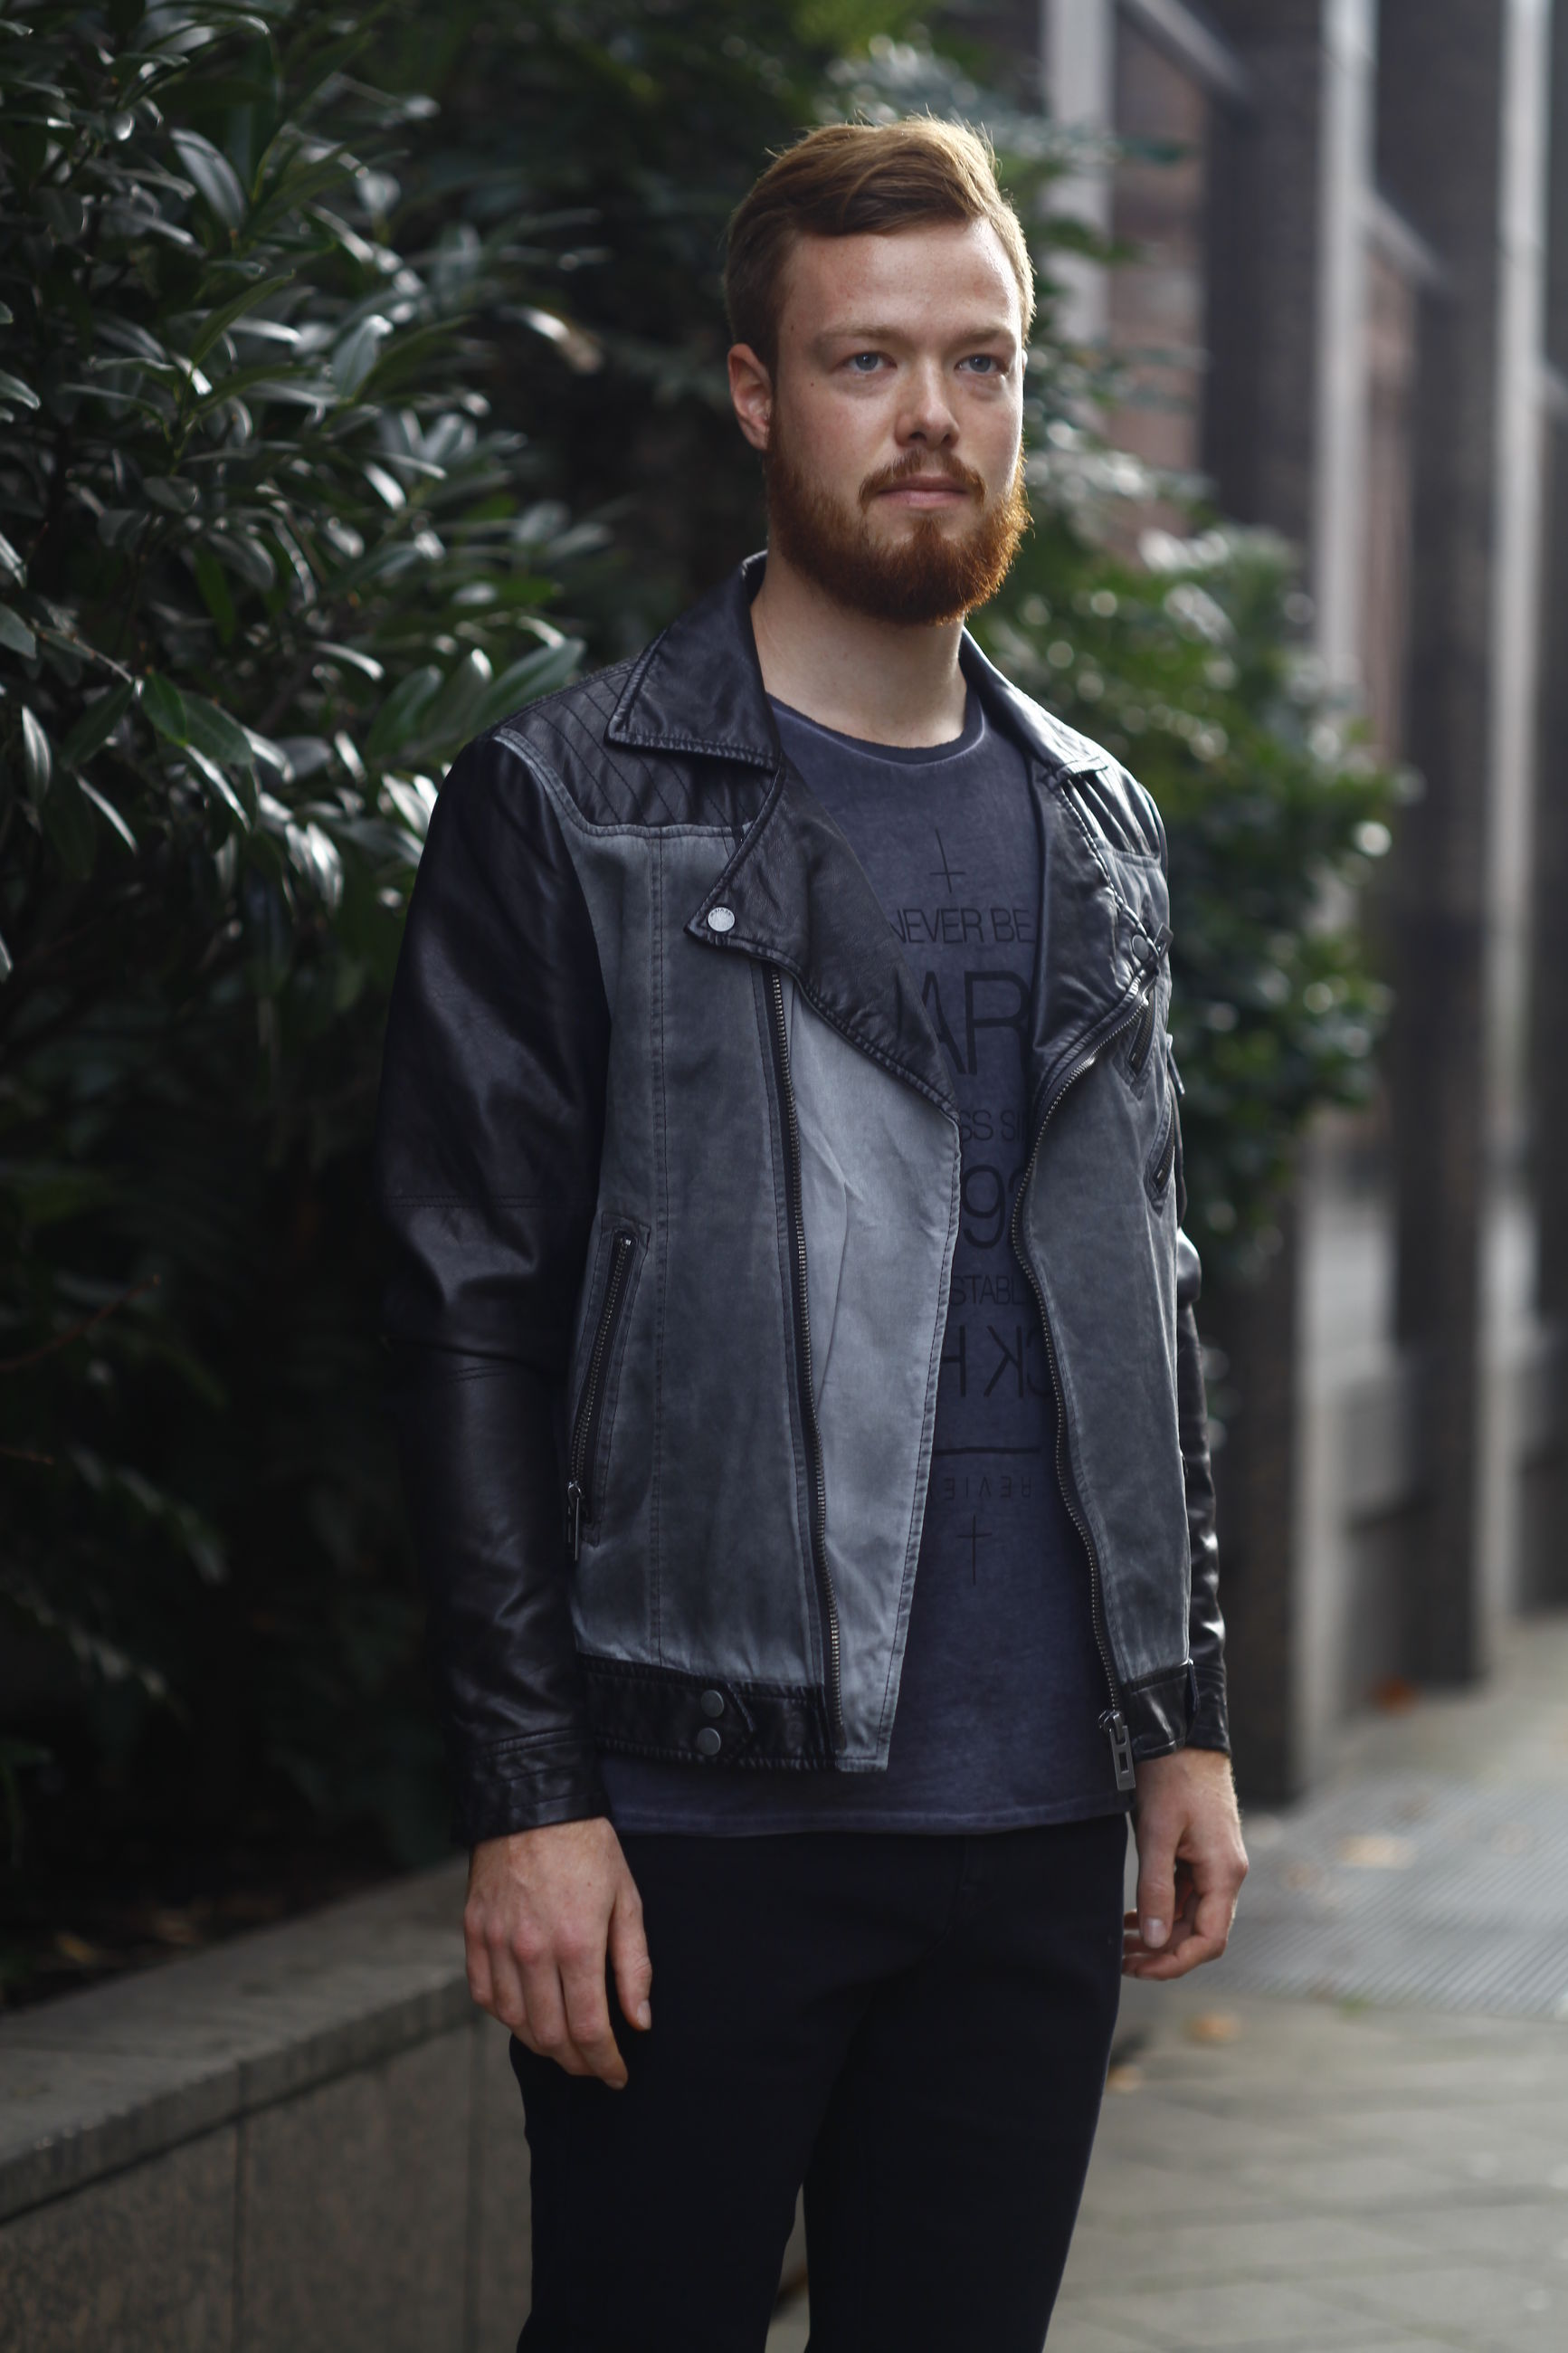 casual clothing, front view, looking at camera, portrait, person, lifestyles, young adult, standing, young men, leisure activity, focus on foreground, jacket, three quarter length, warm clothing, waist up, smiling, handsome